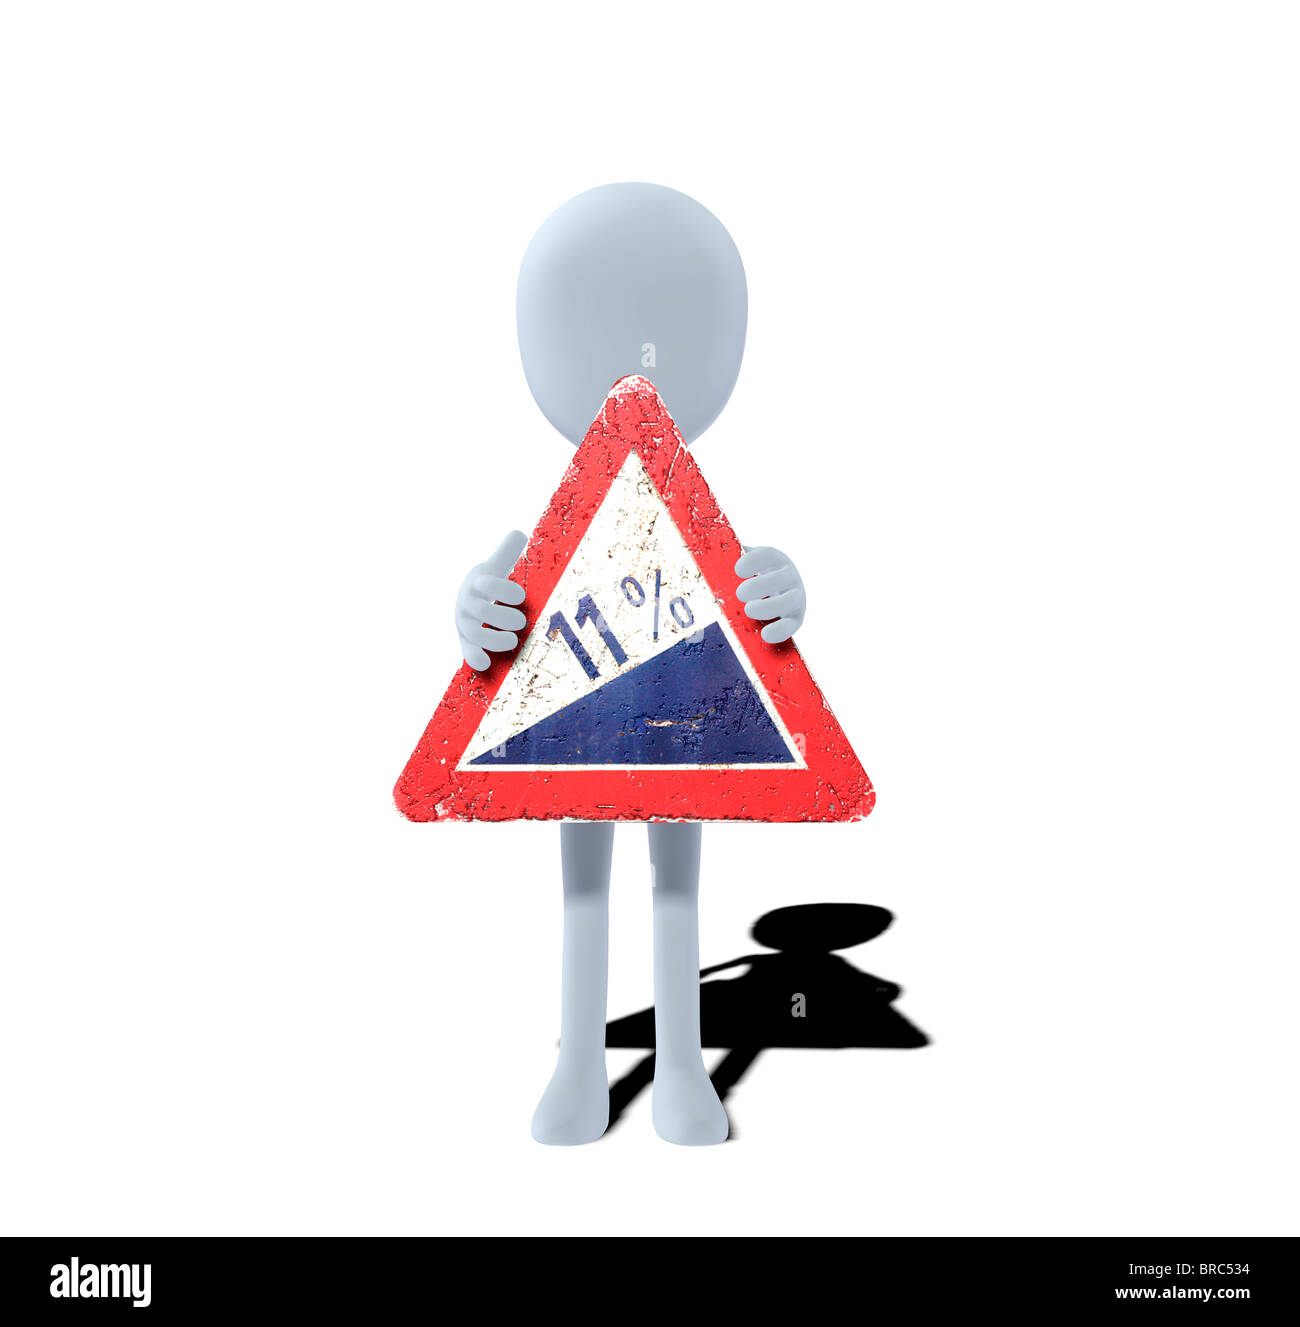 concept figure with warning sign steep hill upwards - Stock Image